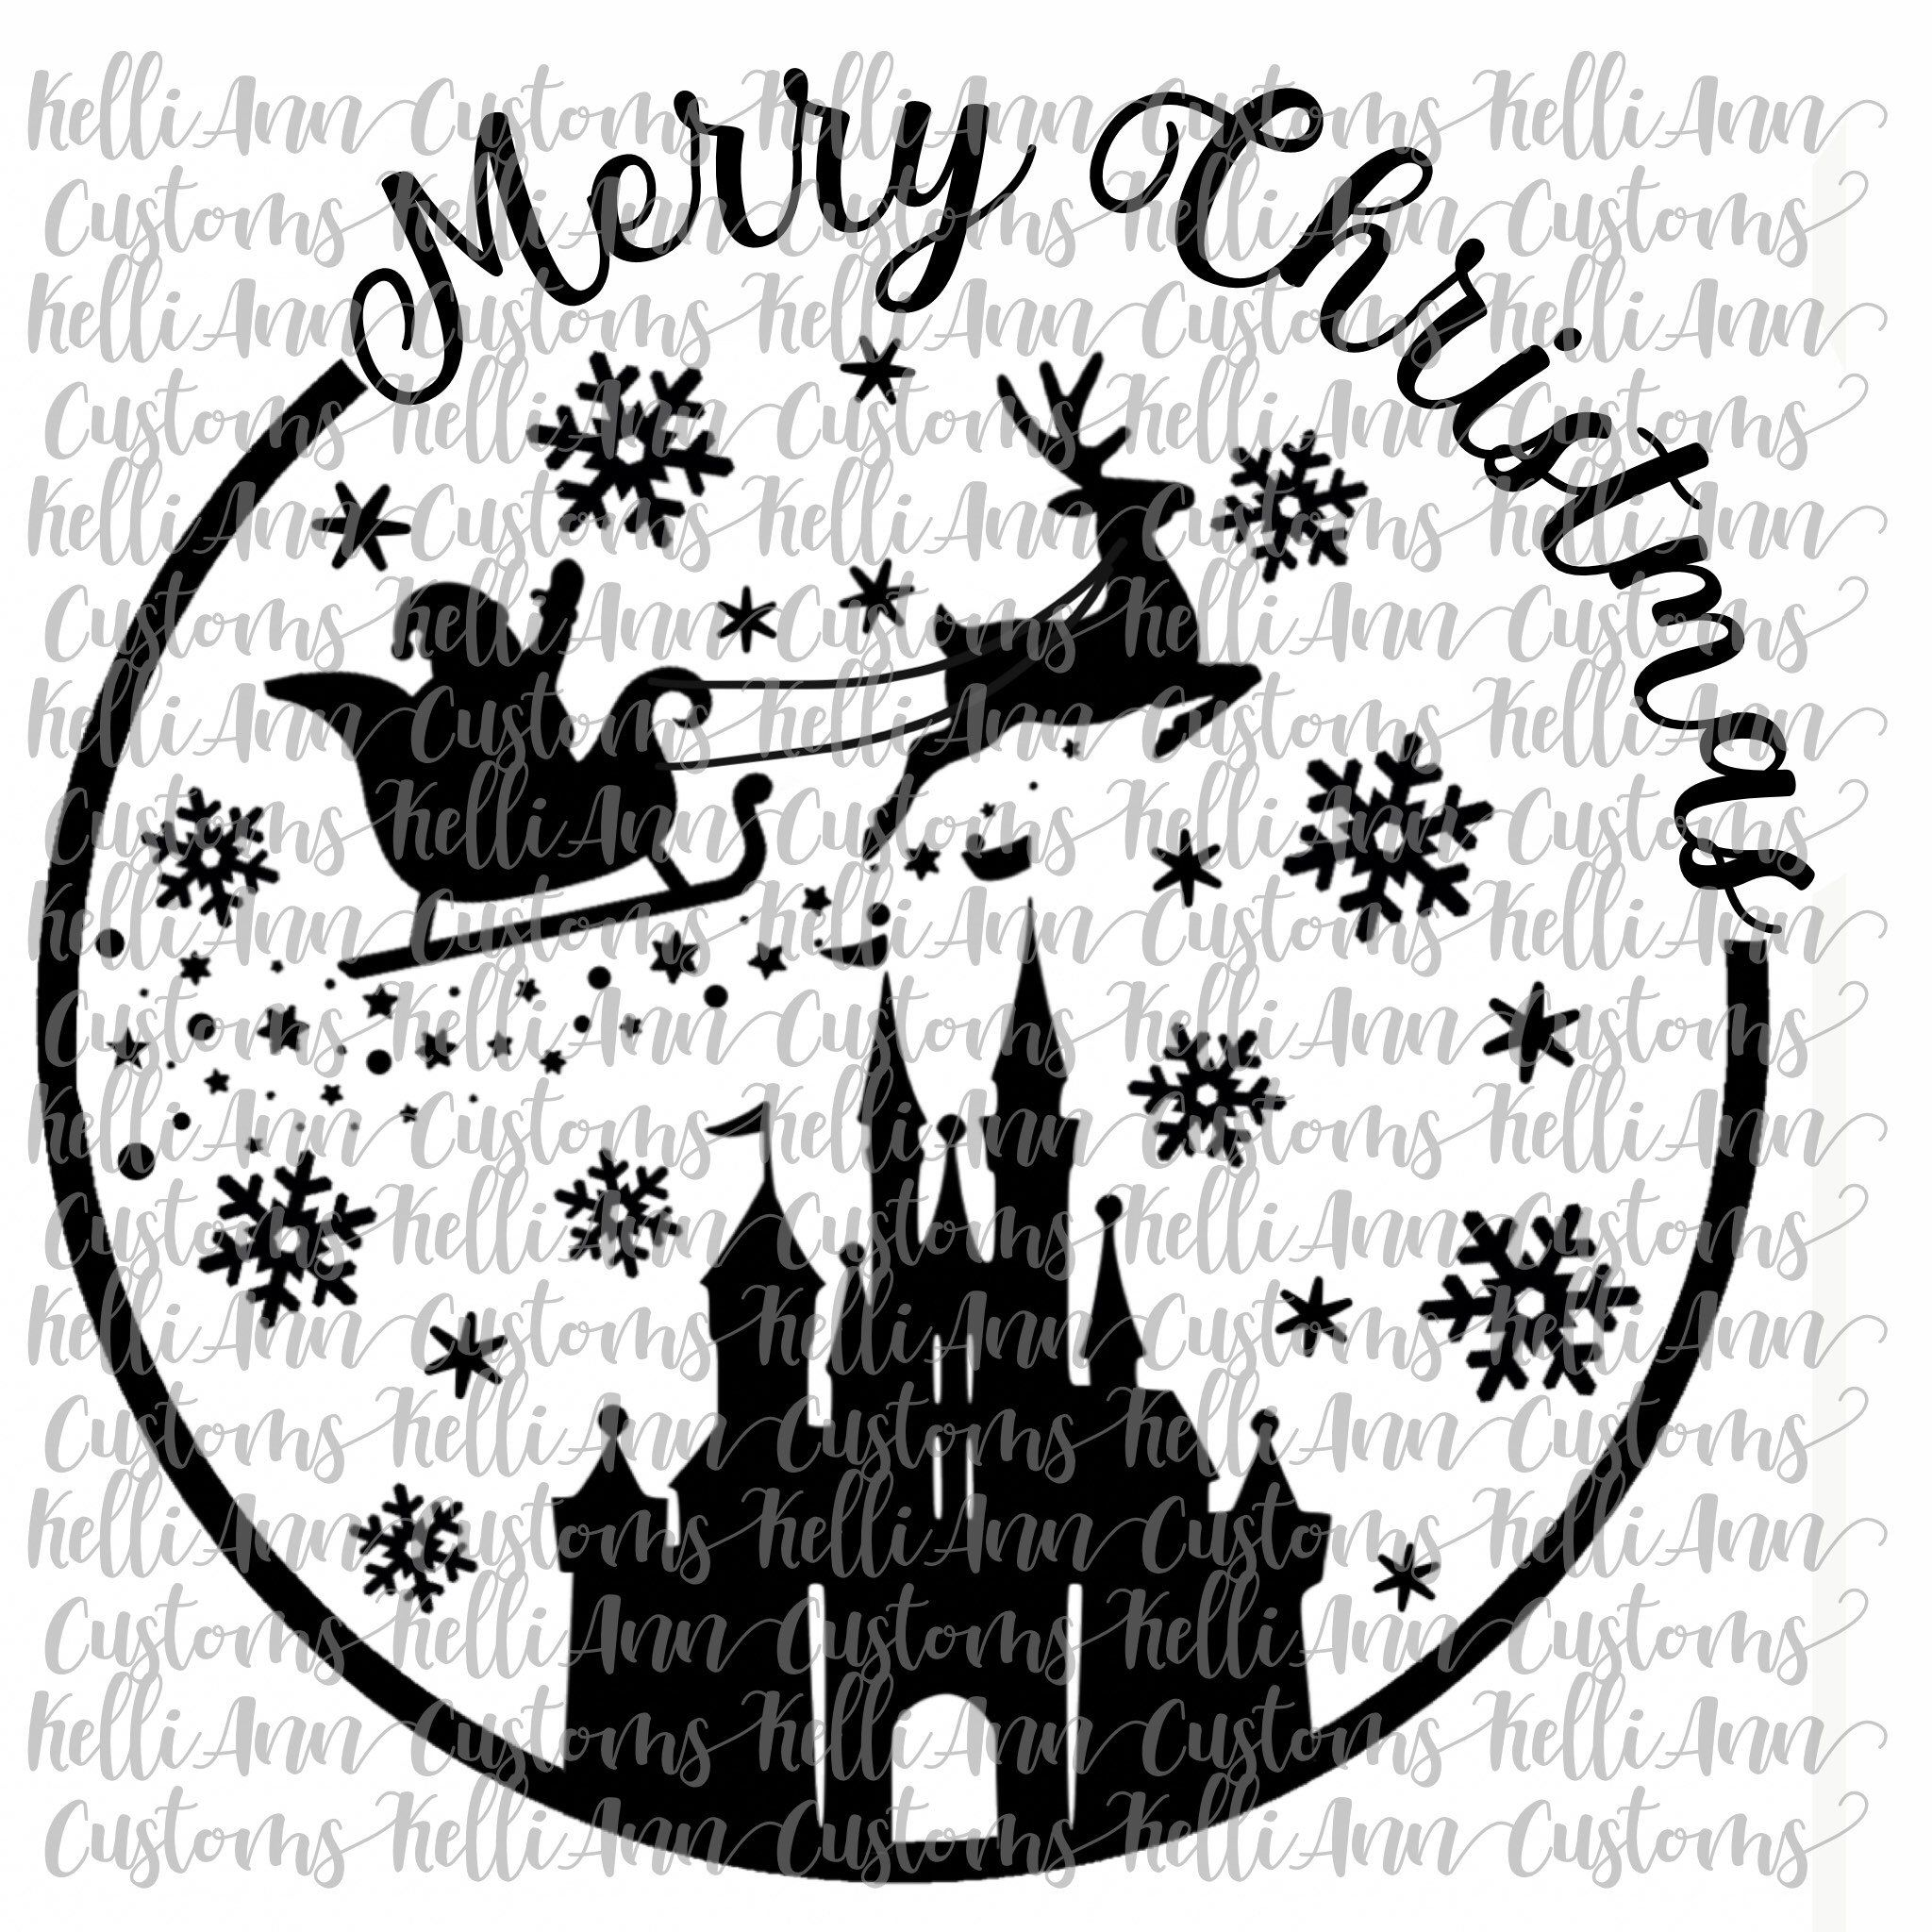 Merry Christmas Digital Download Disney Merry Christmas Svg Etsy Disney Christmas Crafts Disney Christmas Shirts Disney Christmas